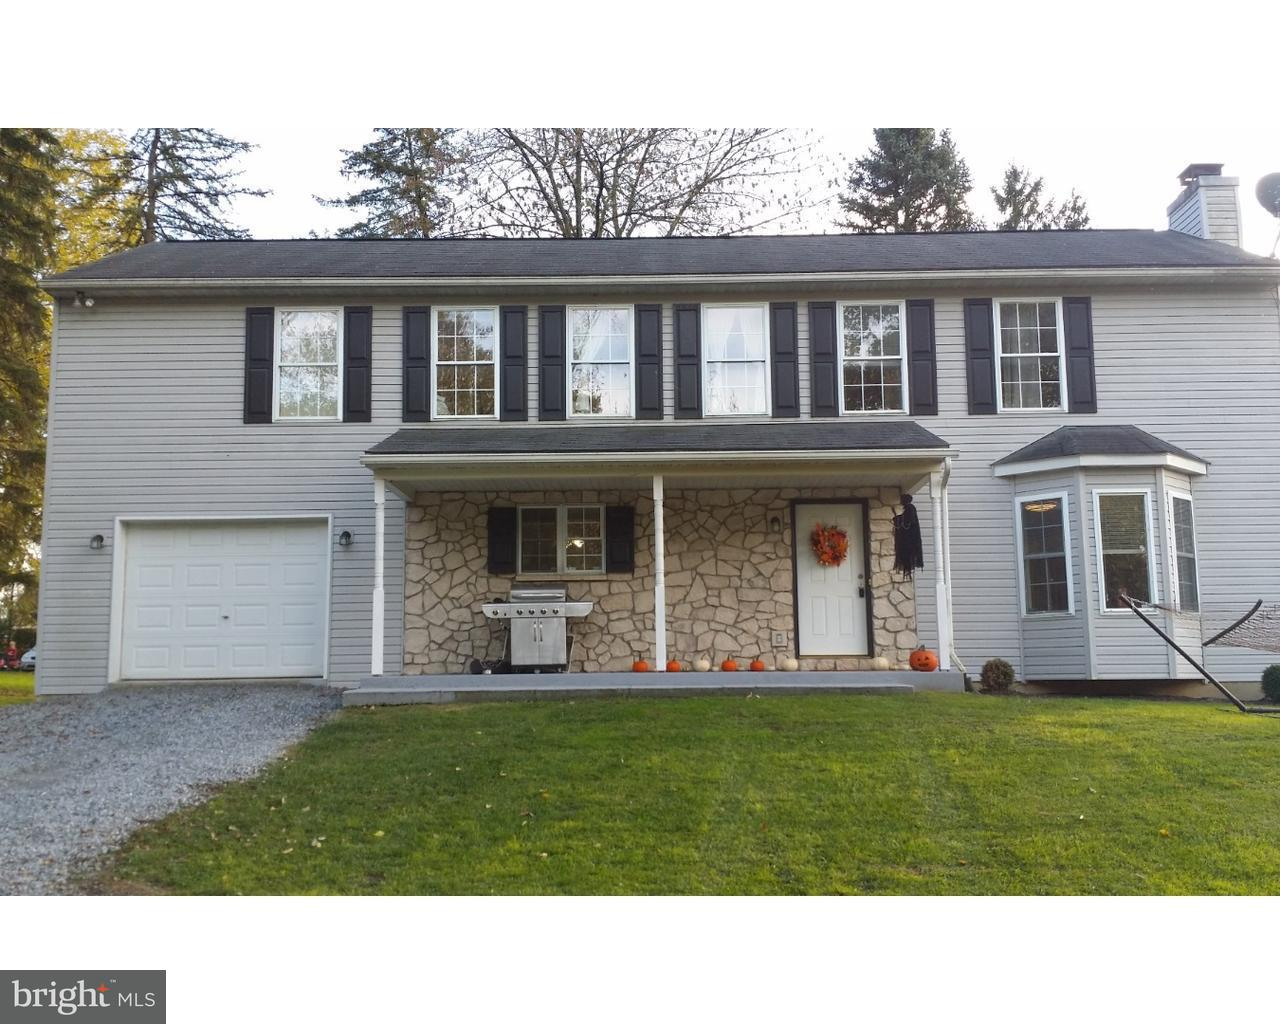 99 BERKLEY RD, READING - Listed at $194,900, READING